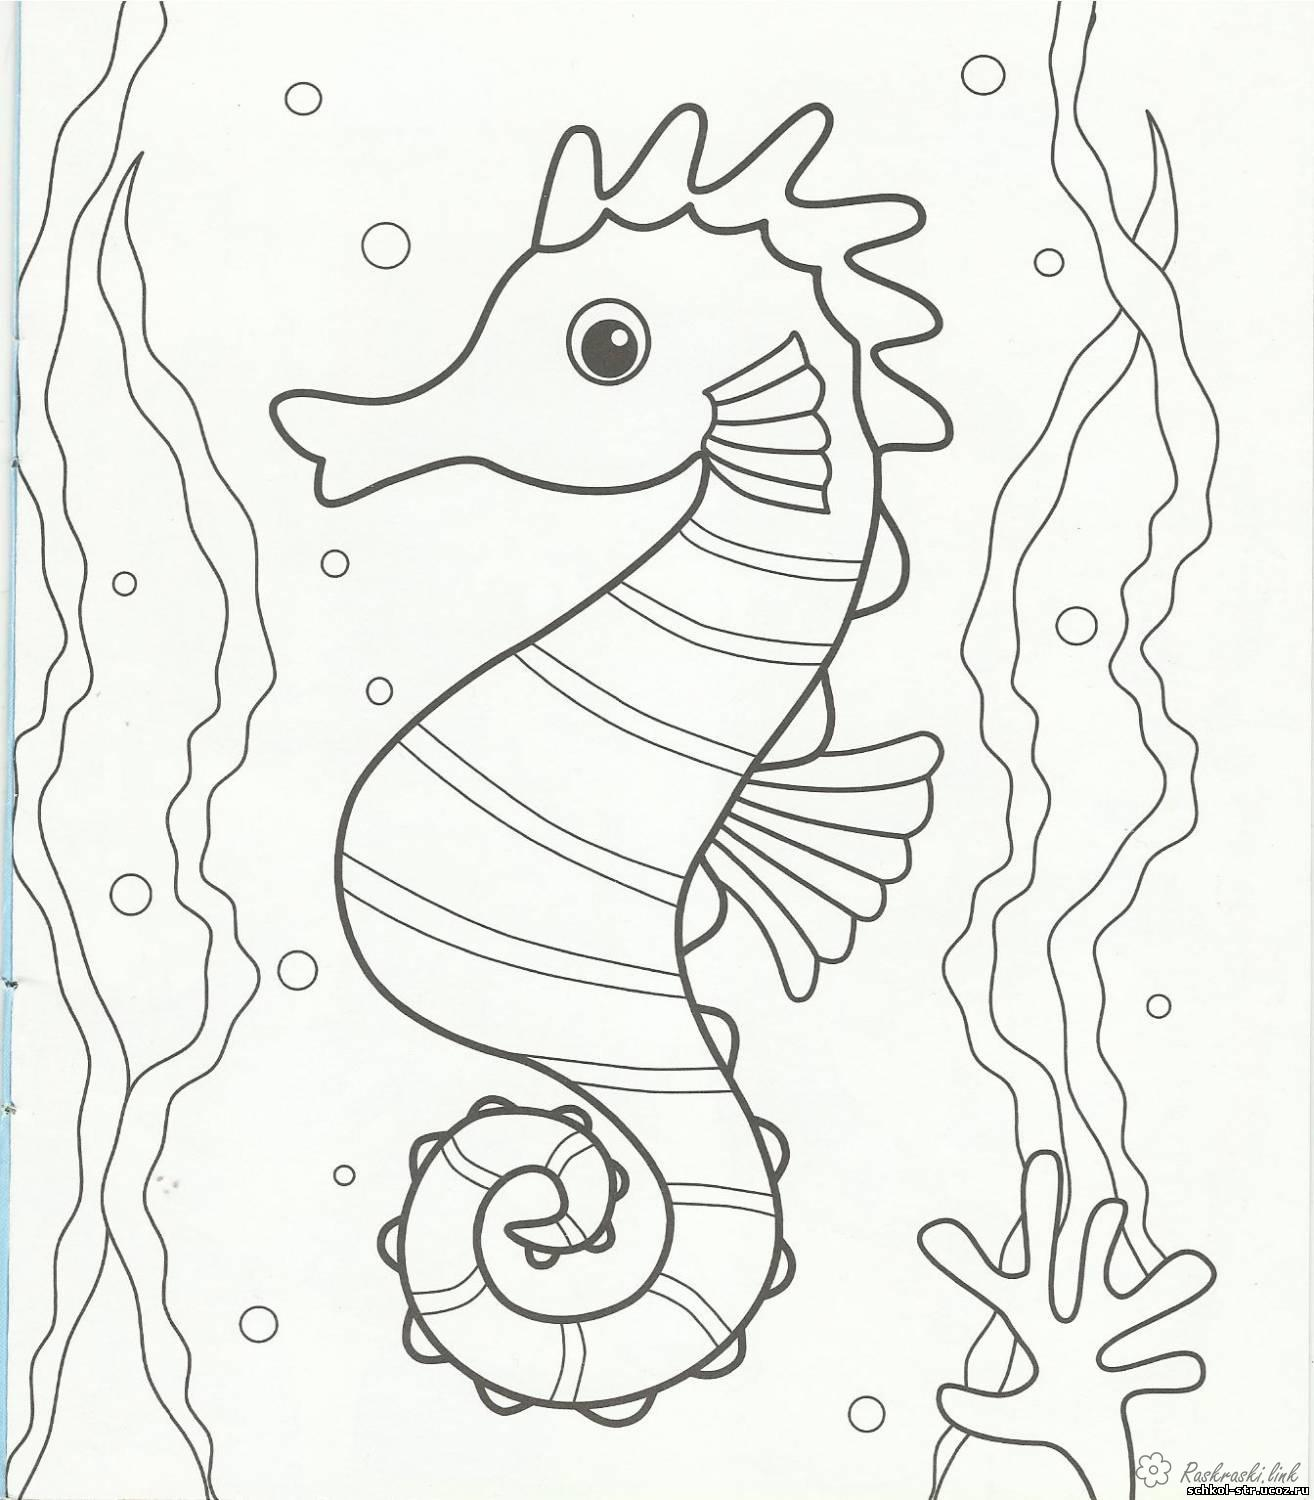 Coloring world water ocean sea horse eye horse looks